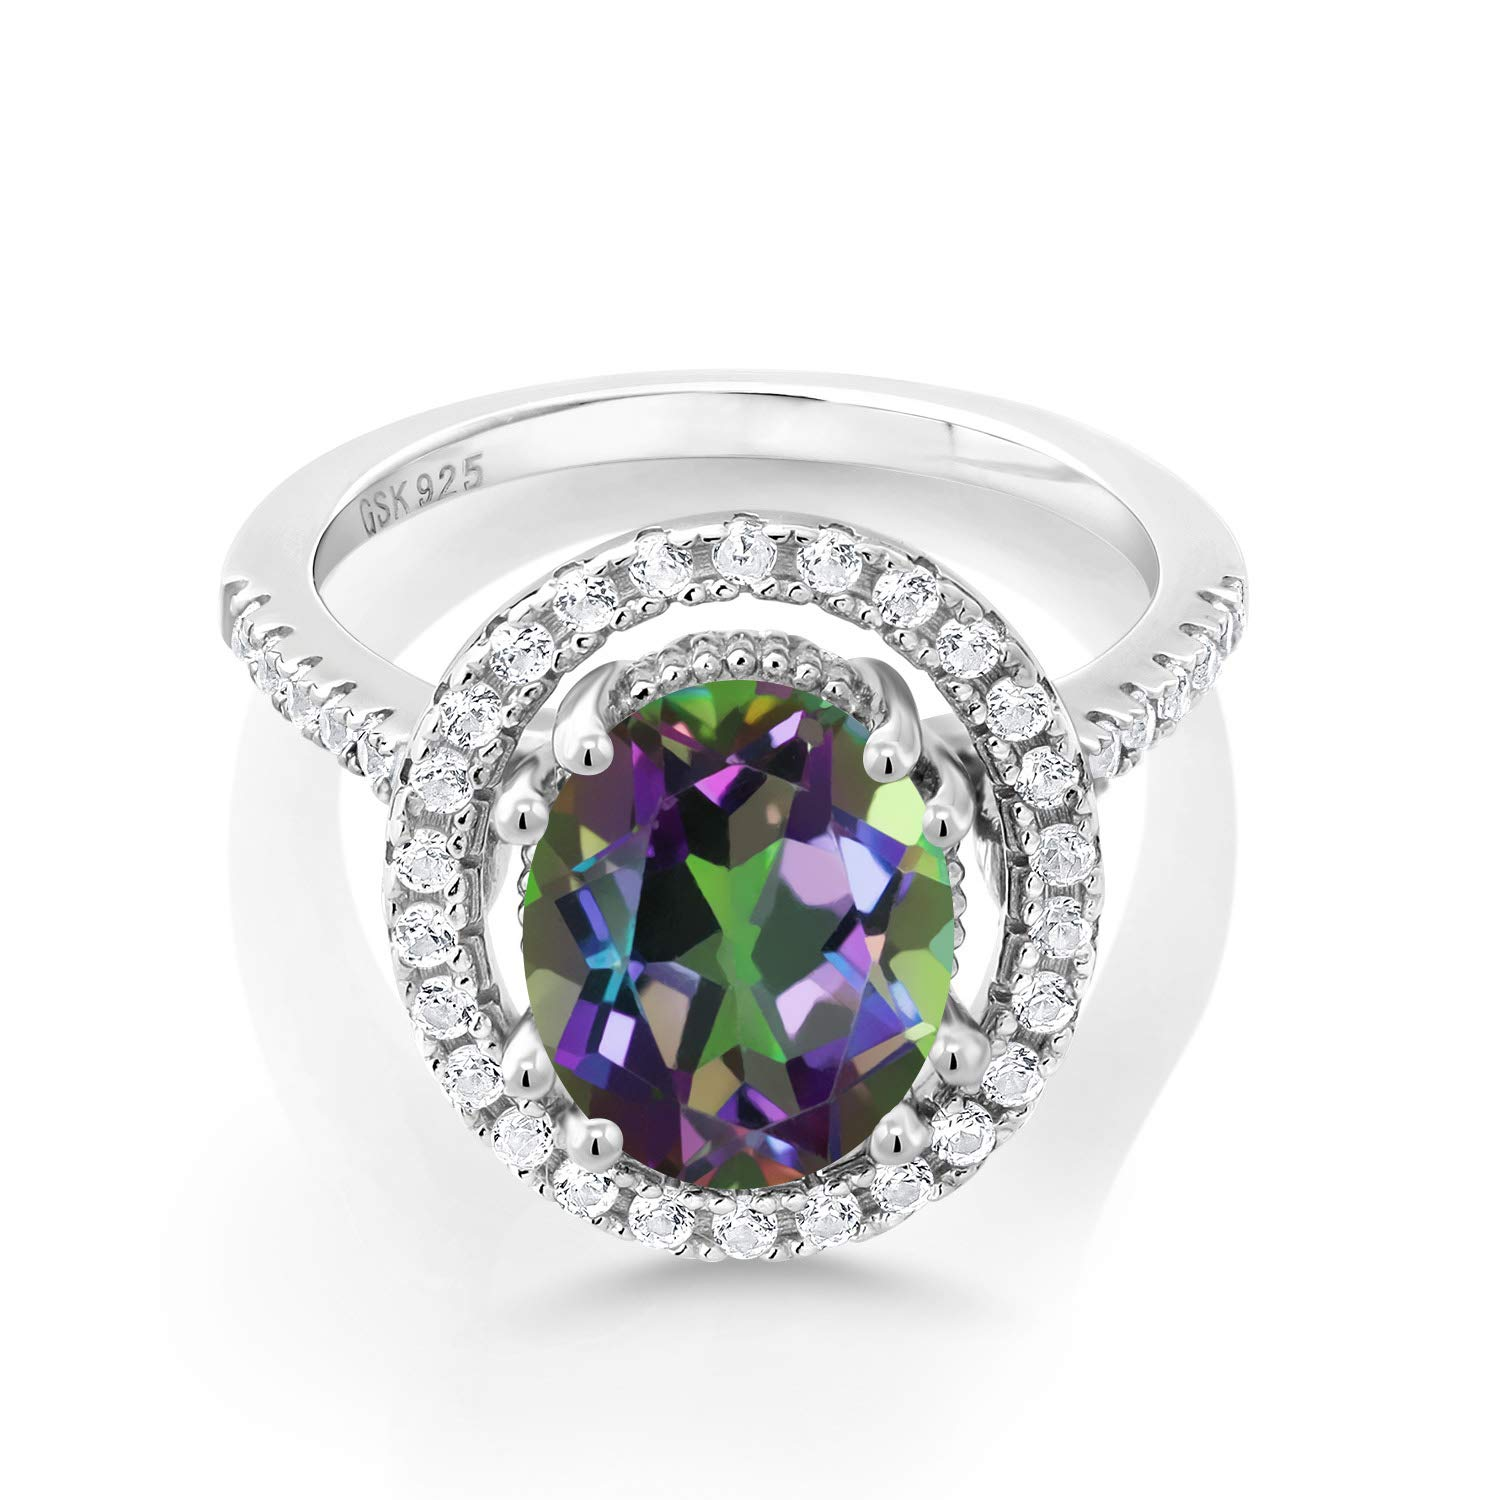 Gem Stone King 4.10 Ct Oval Green Mystic Quartz White Created Sapphire 925 Sterling Silver Ring